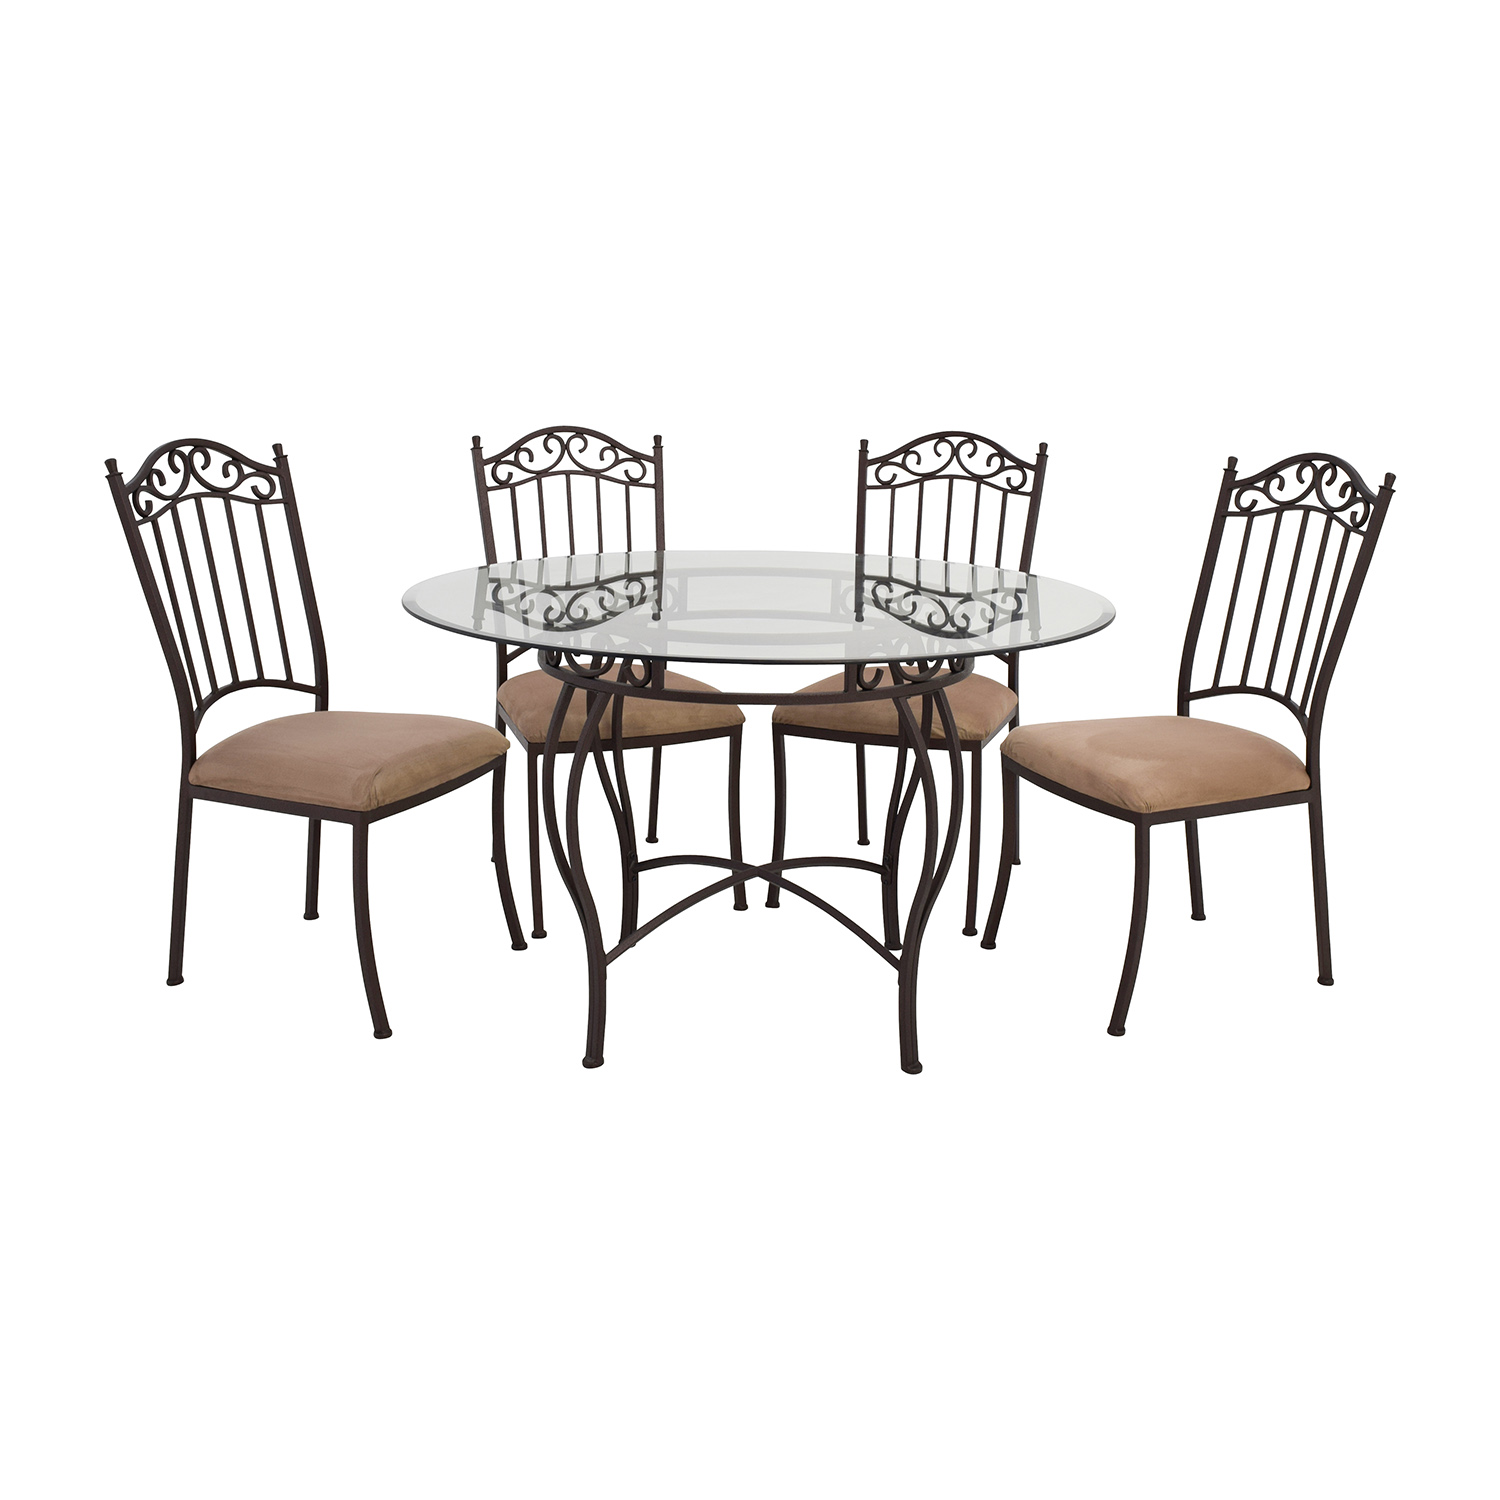 second hand wrought iron round glass table and chairs wrought iron kitchen chairs buy Wrought Iron Round Glass Table and Chairs online